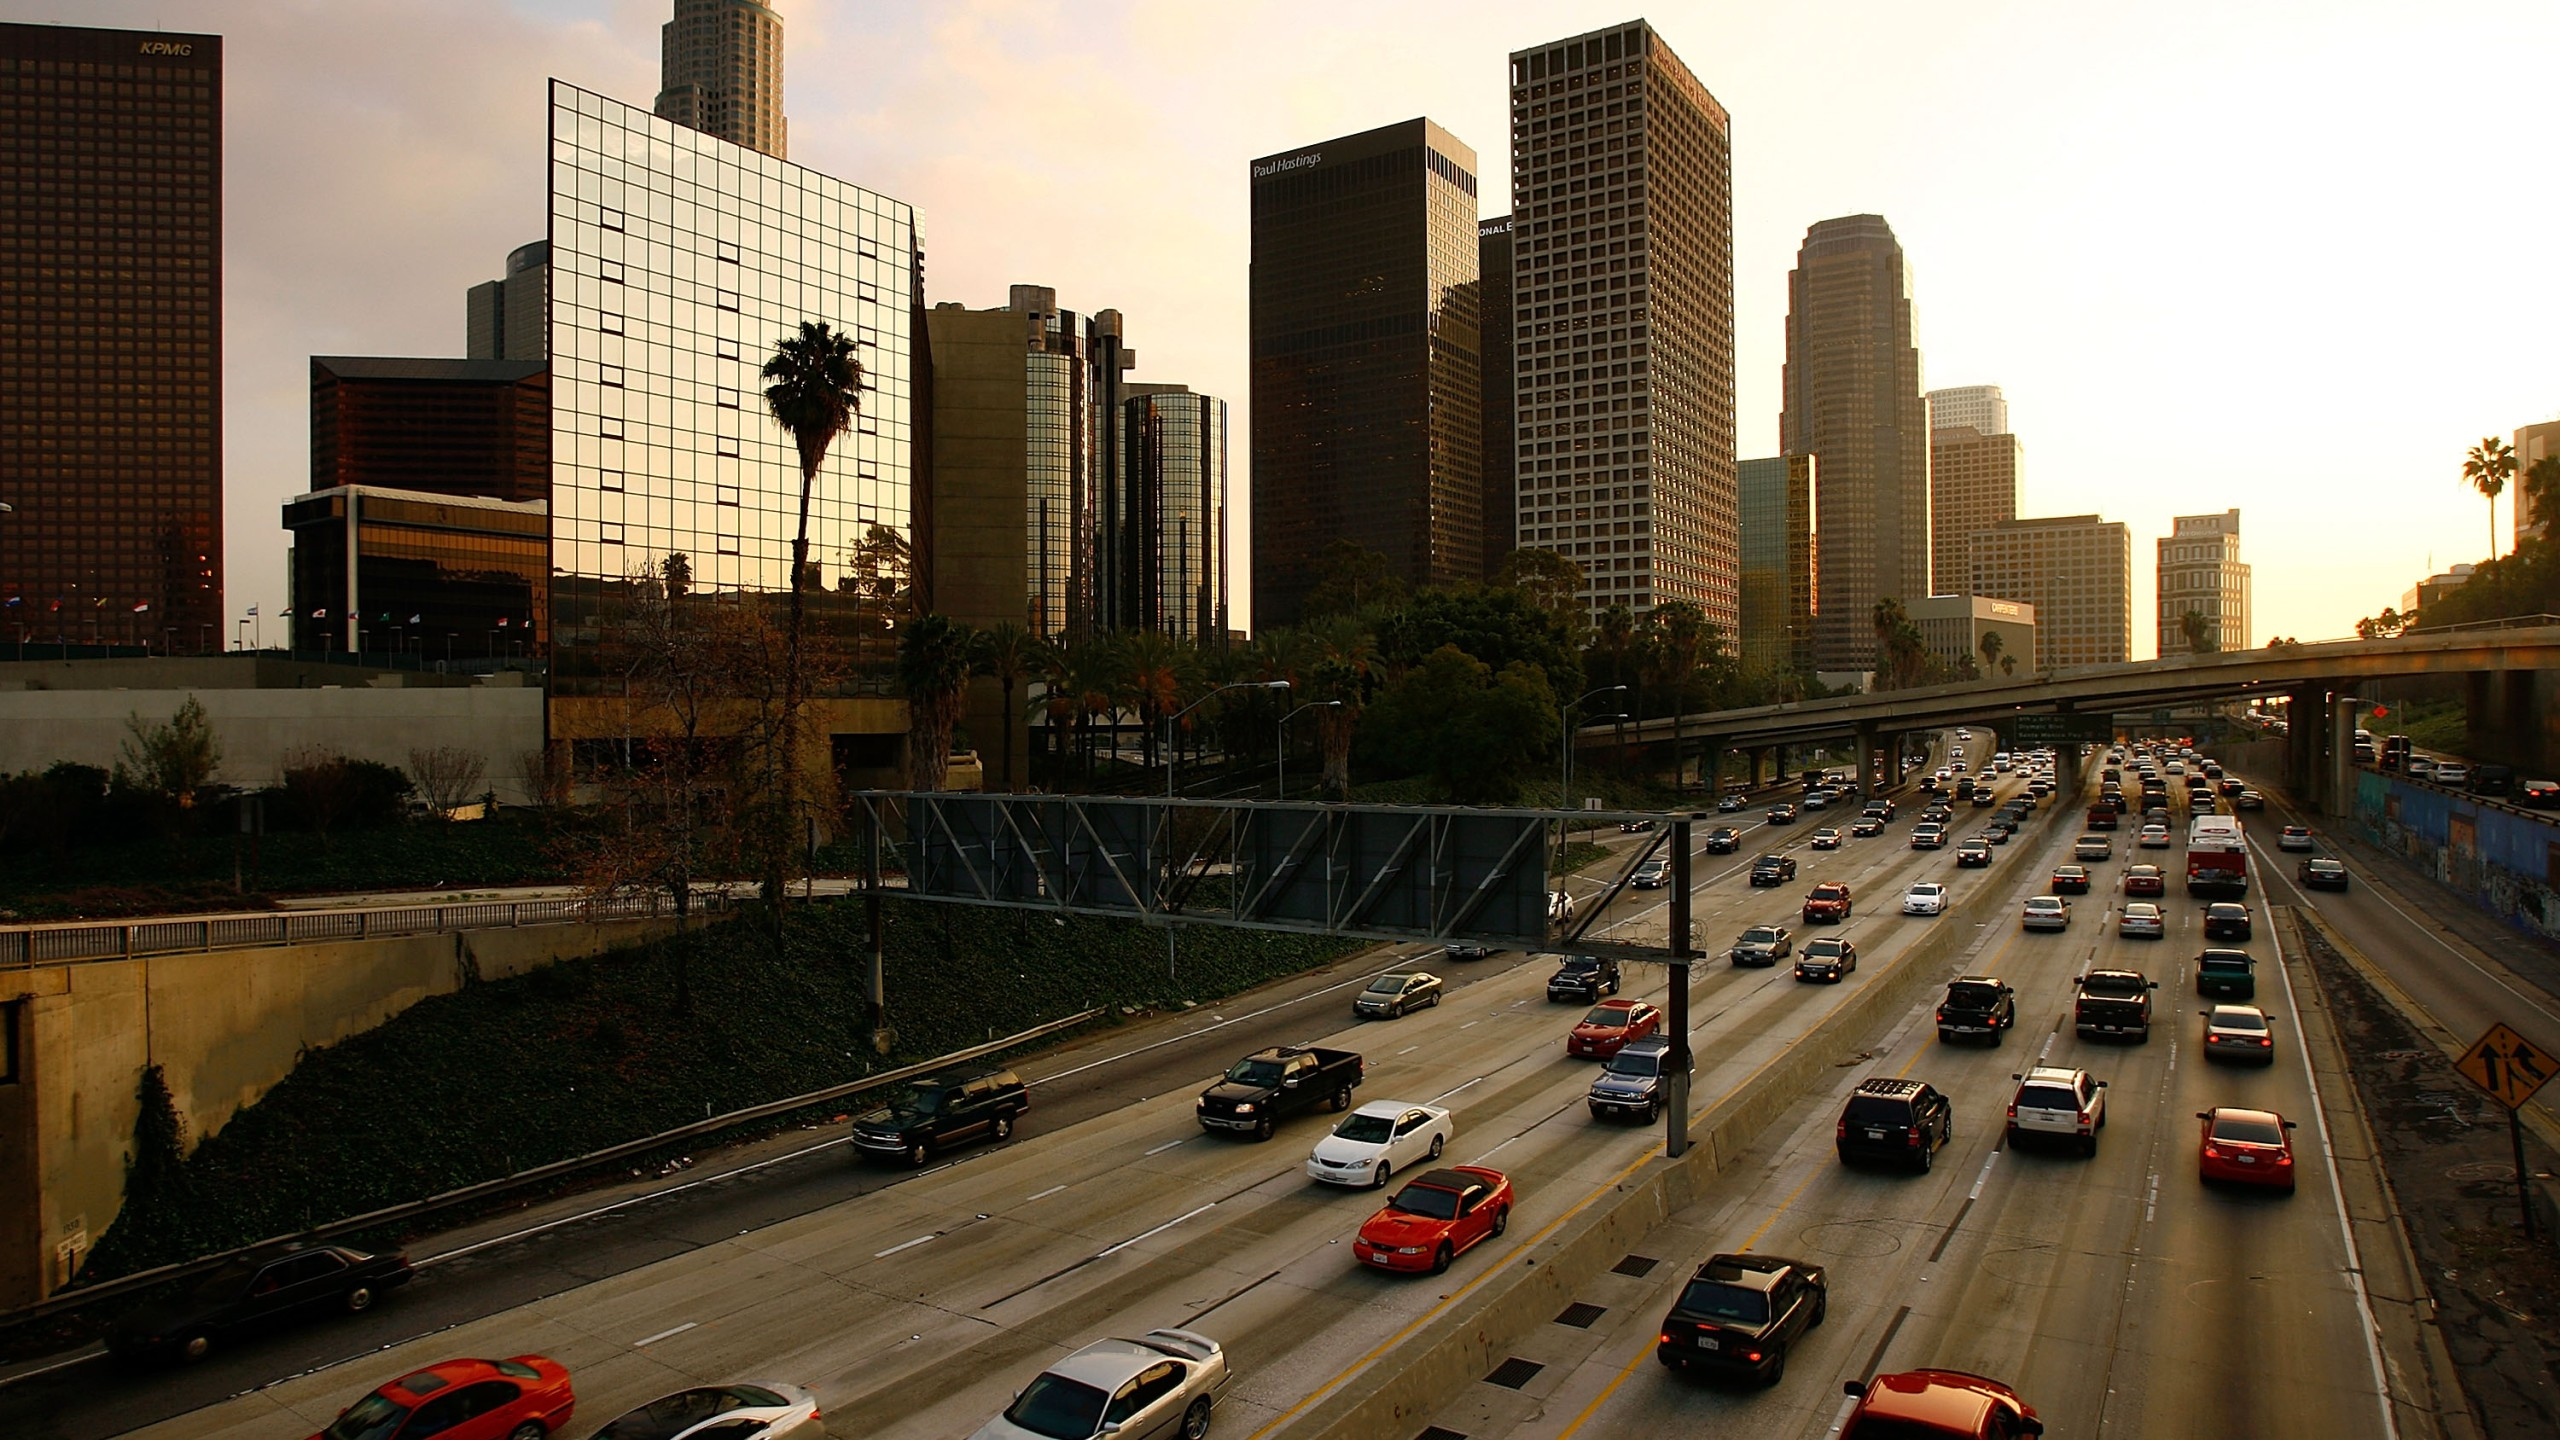 Commuters fill the 110 Freeway near downtown Los Angeles during rush-hour on Jan. 9, 2008. (Credit: David McNew / Getty Images)